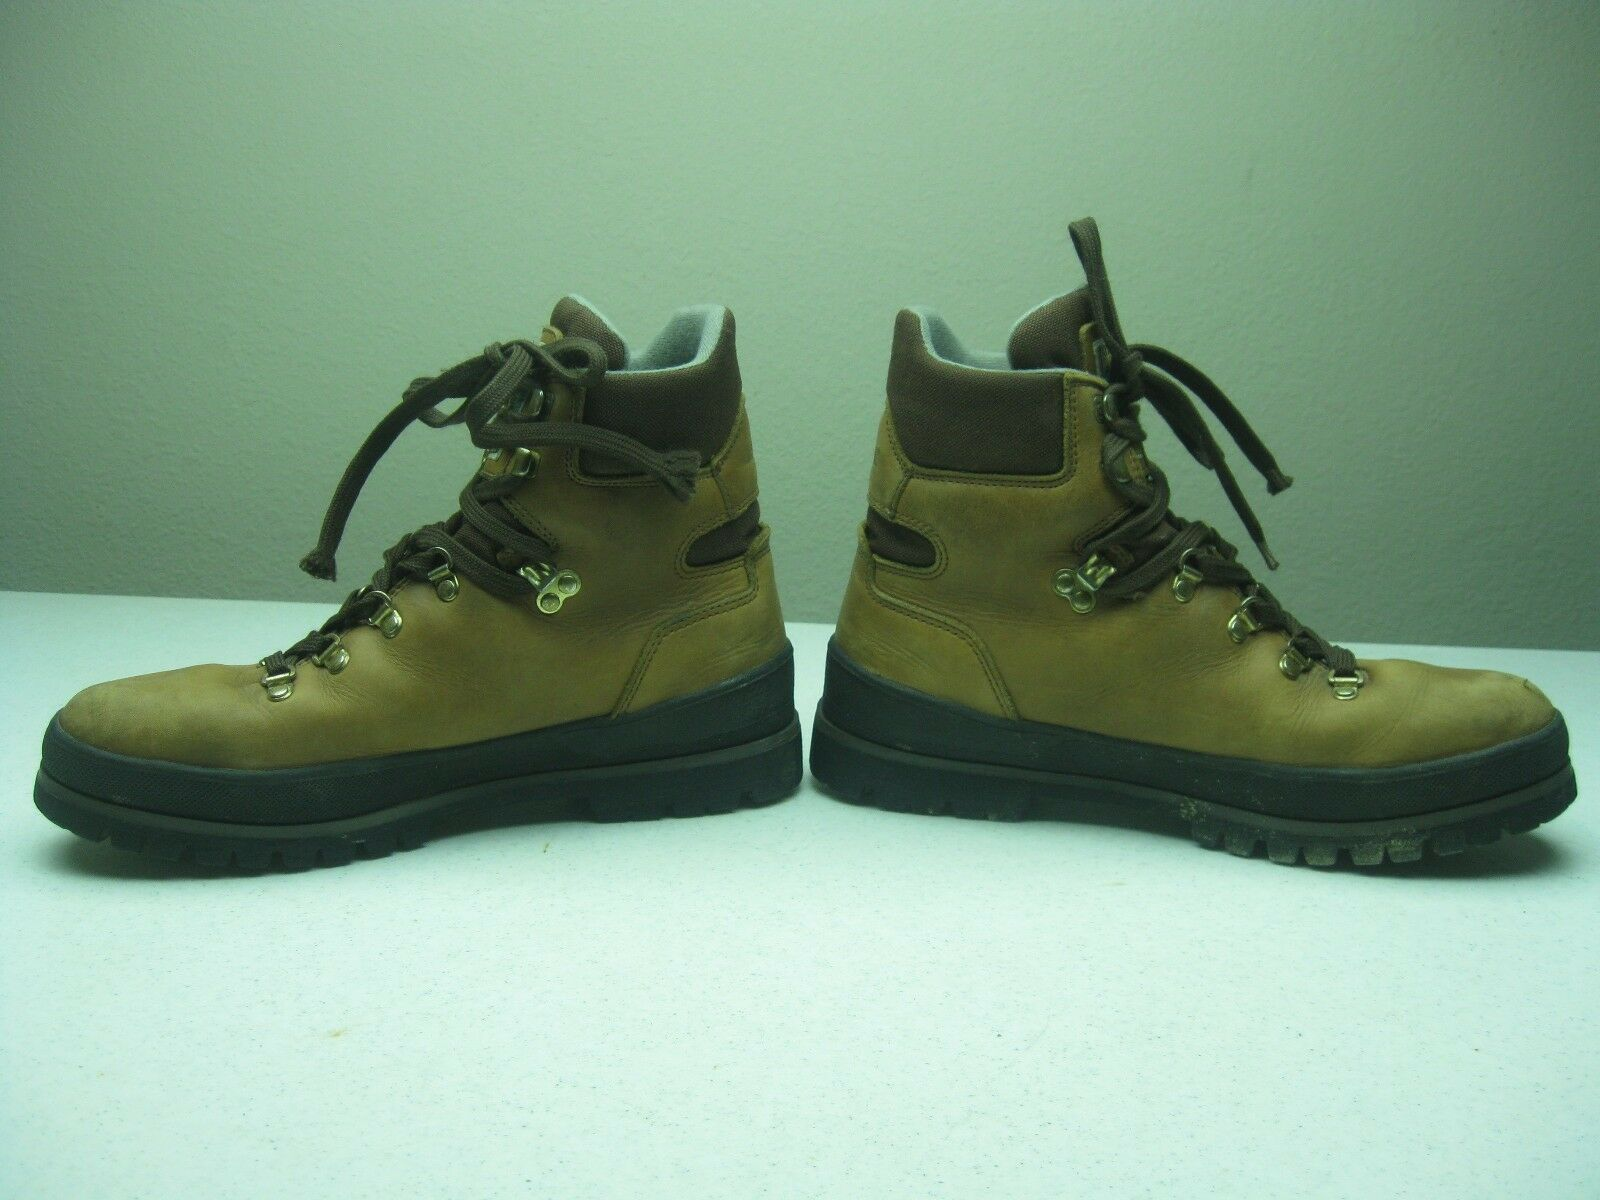 Vintage Brown Made in Italy TECNICA TREKKING Mountaineering Hiking Trail Stivali